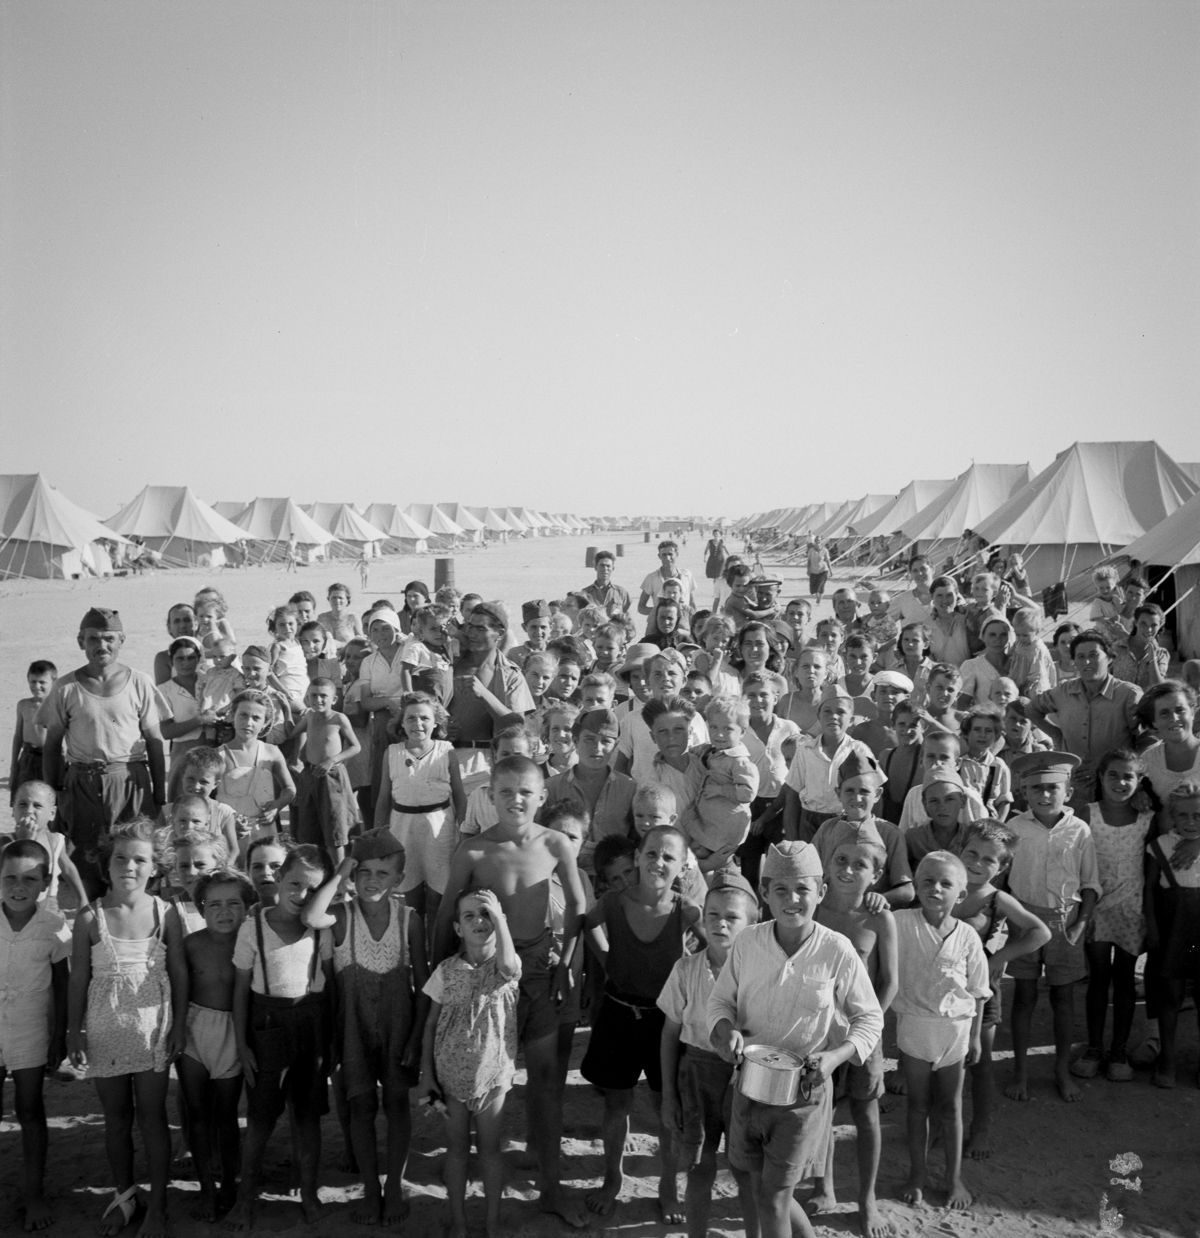 1944 September el shatt croatia egypt